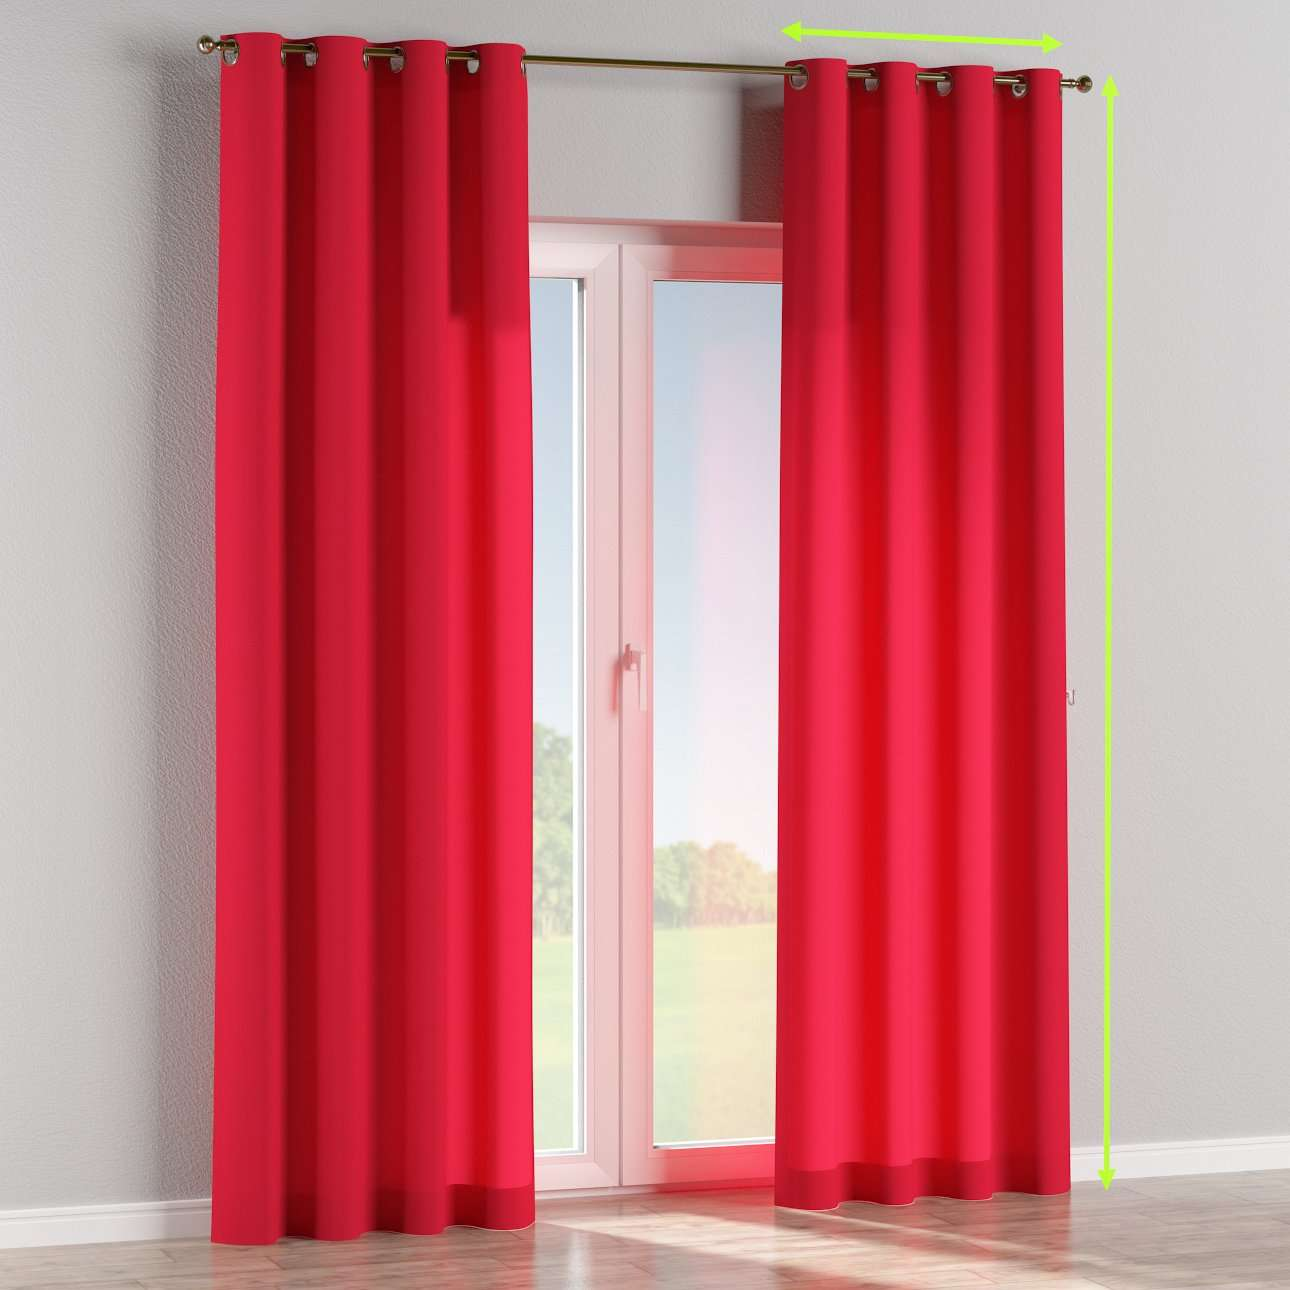 Eyelet lined curtains in collection Quadro, fabric: 136-19